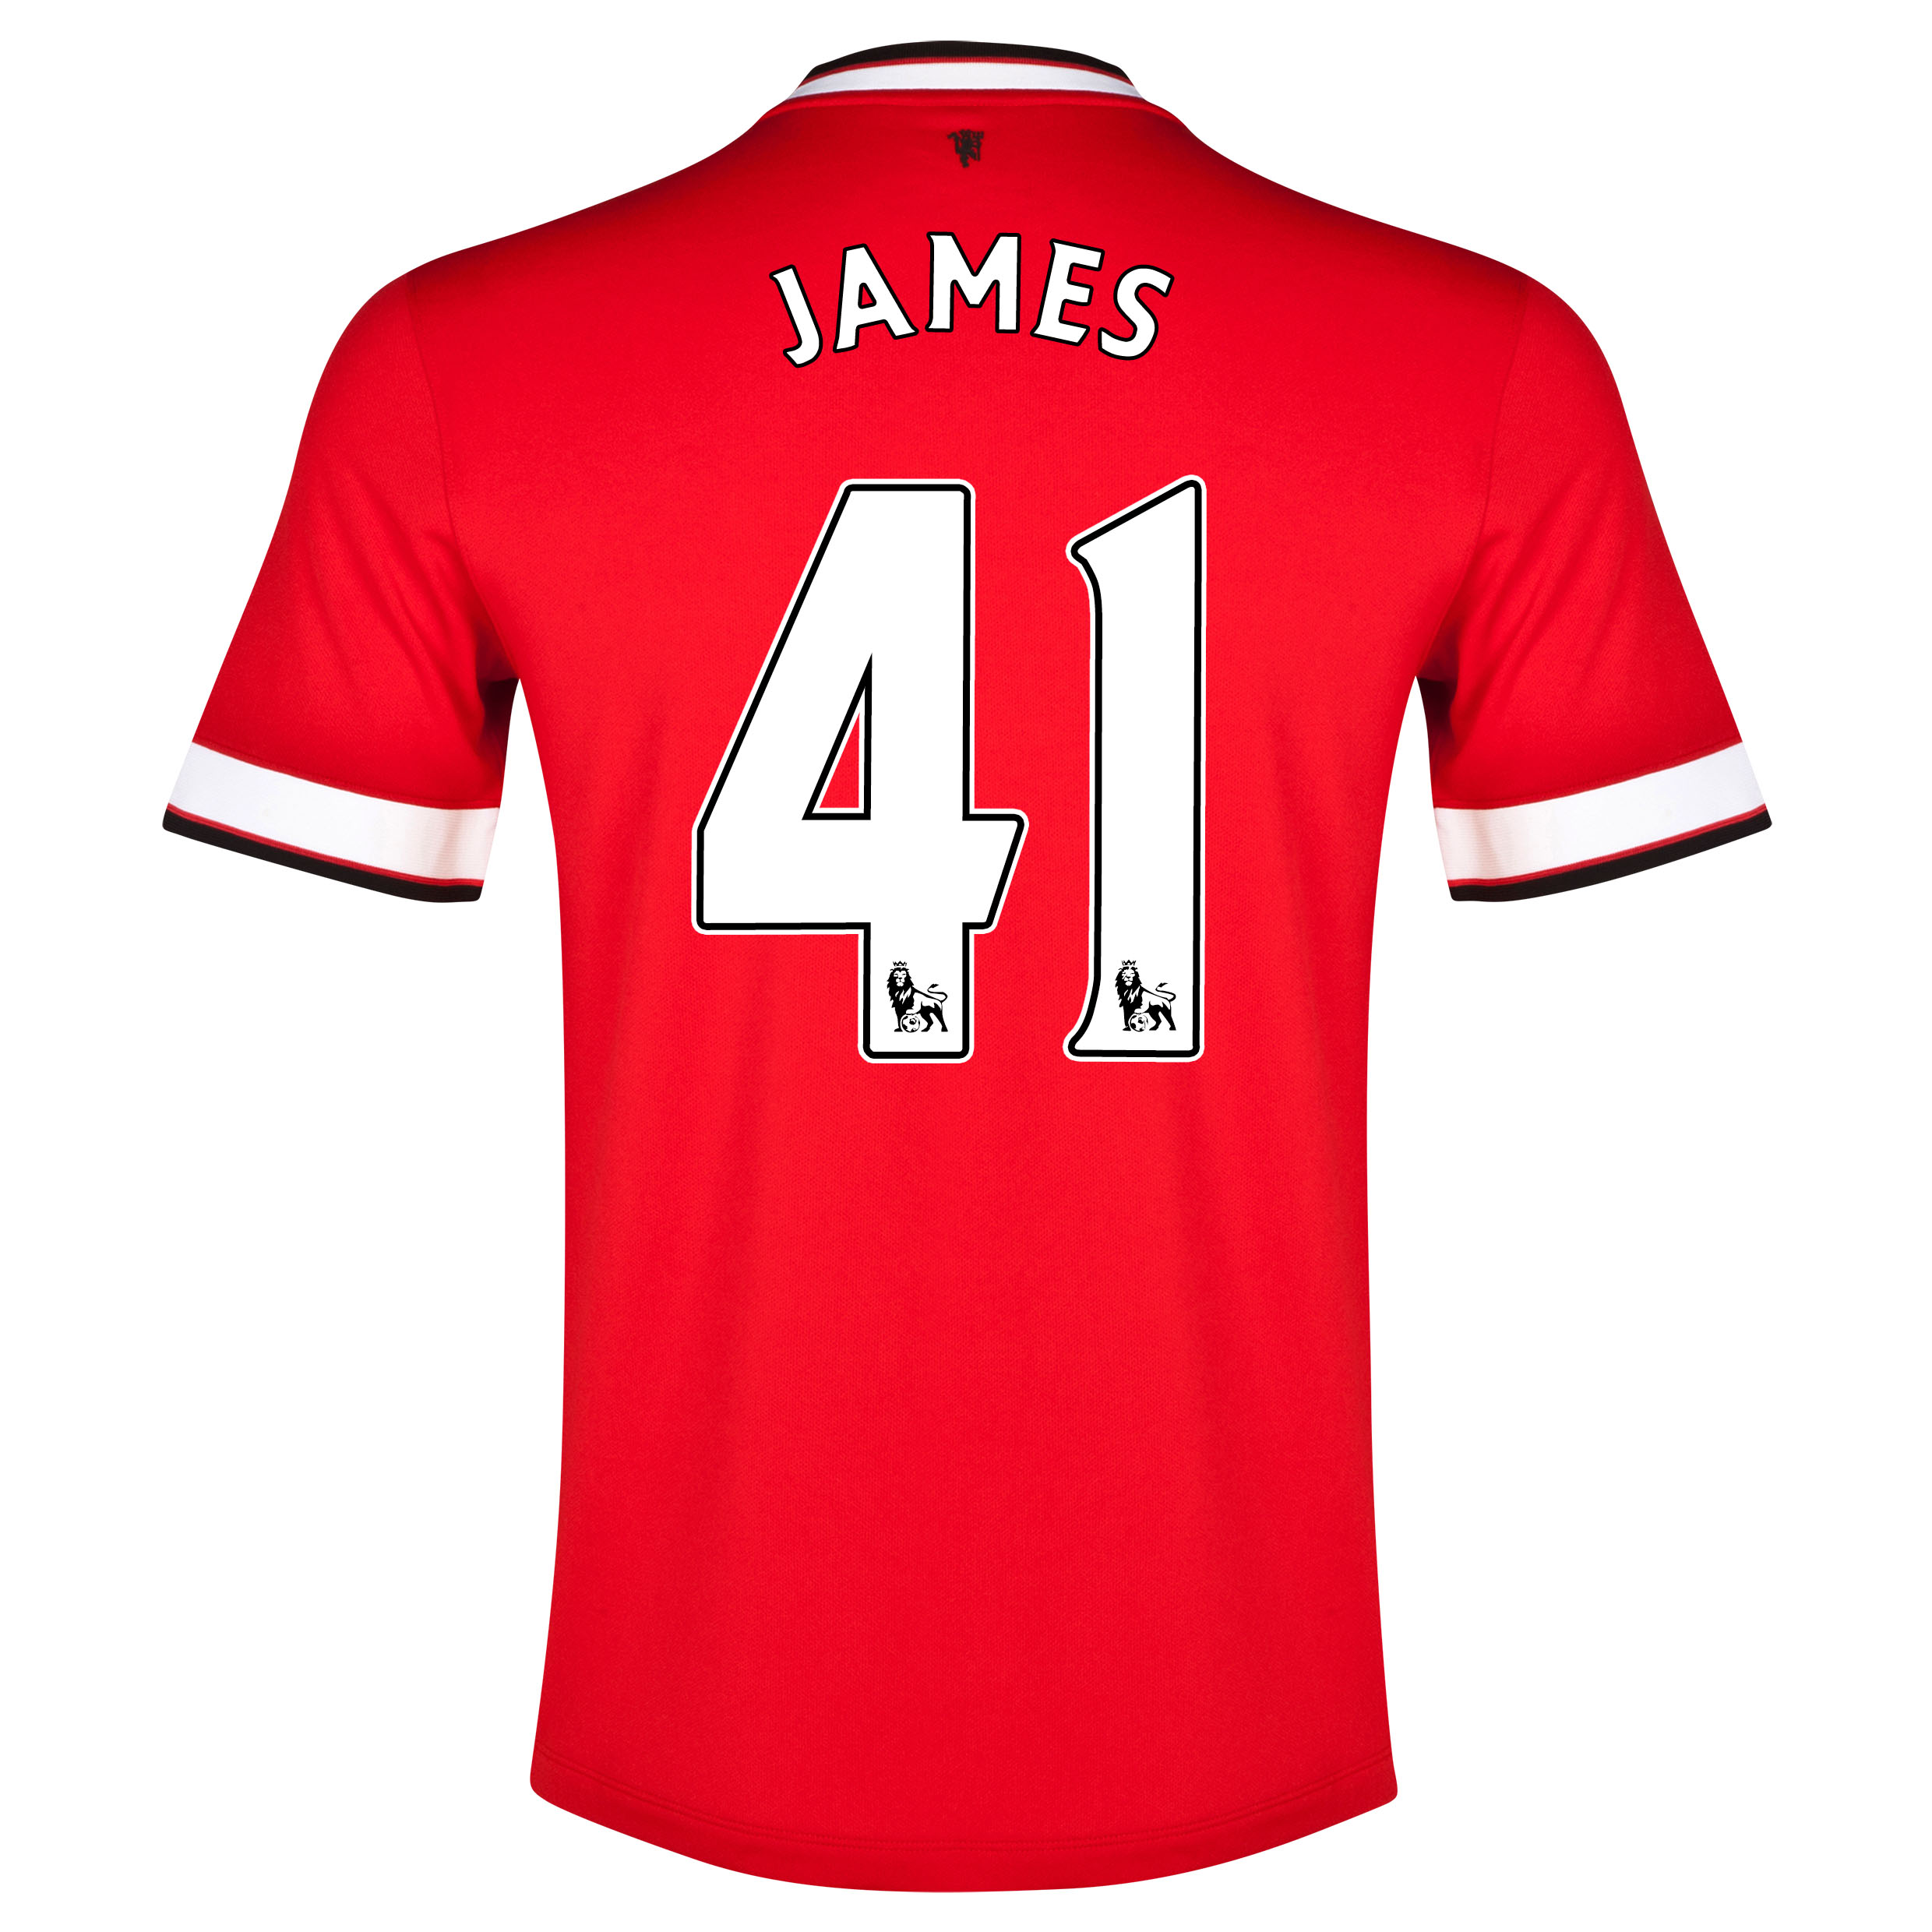 Manchester United Home Shirt 2014/15 with James 41 printing